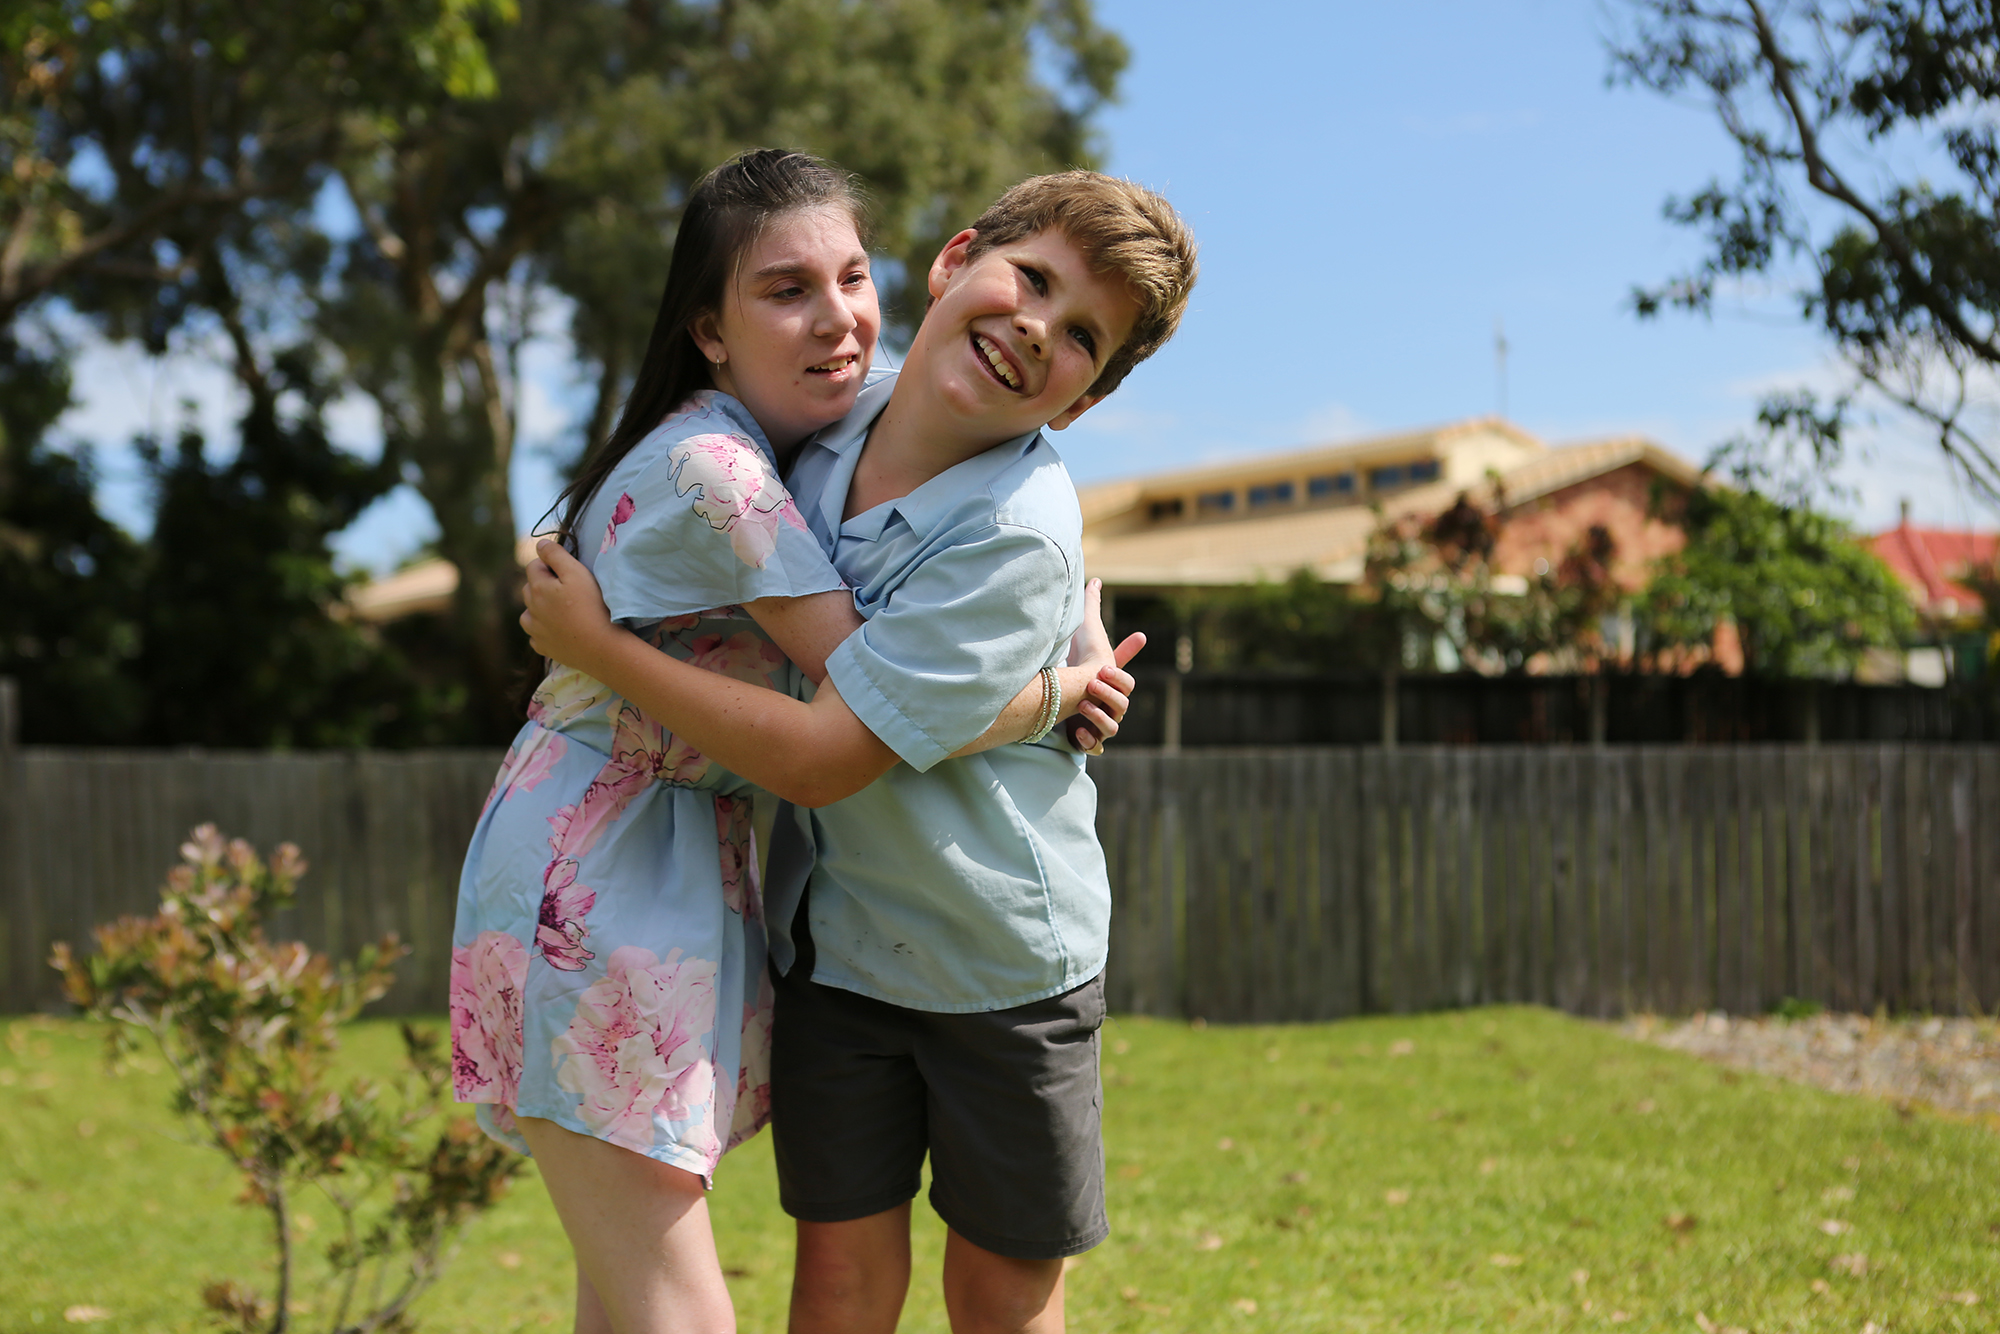 Tanisha has a rare genetic disorder which has resulted in intellectual and physical disabilities. Her younger brother Harley helps his mother take care of her.  Featured in The Guardian Australia